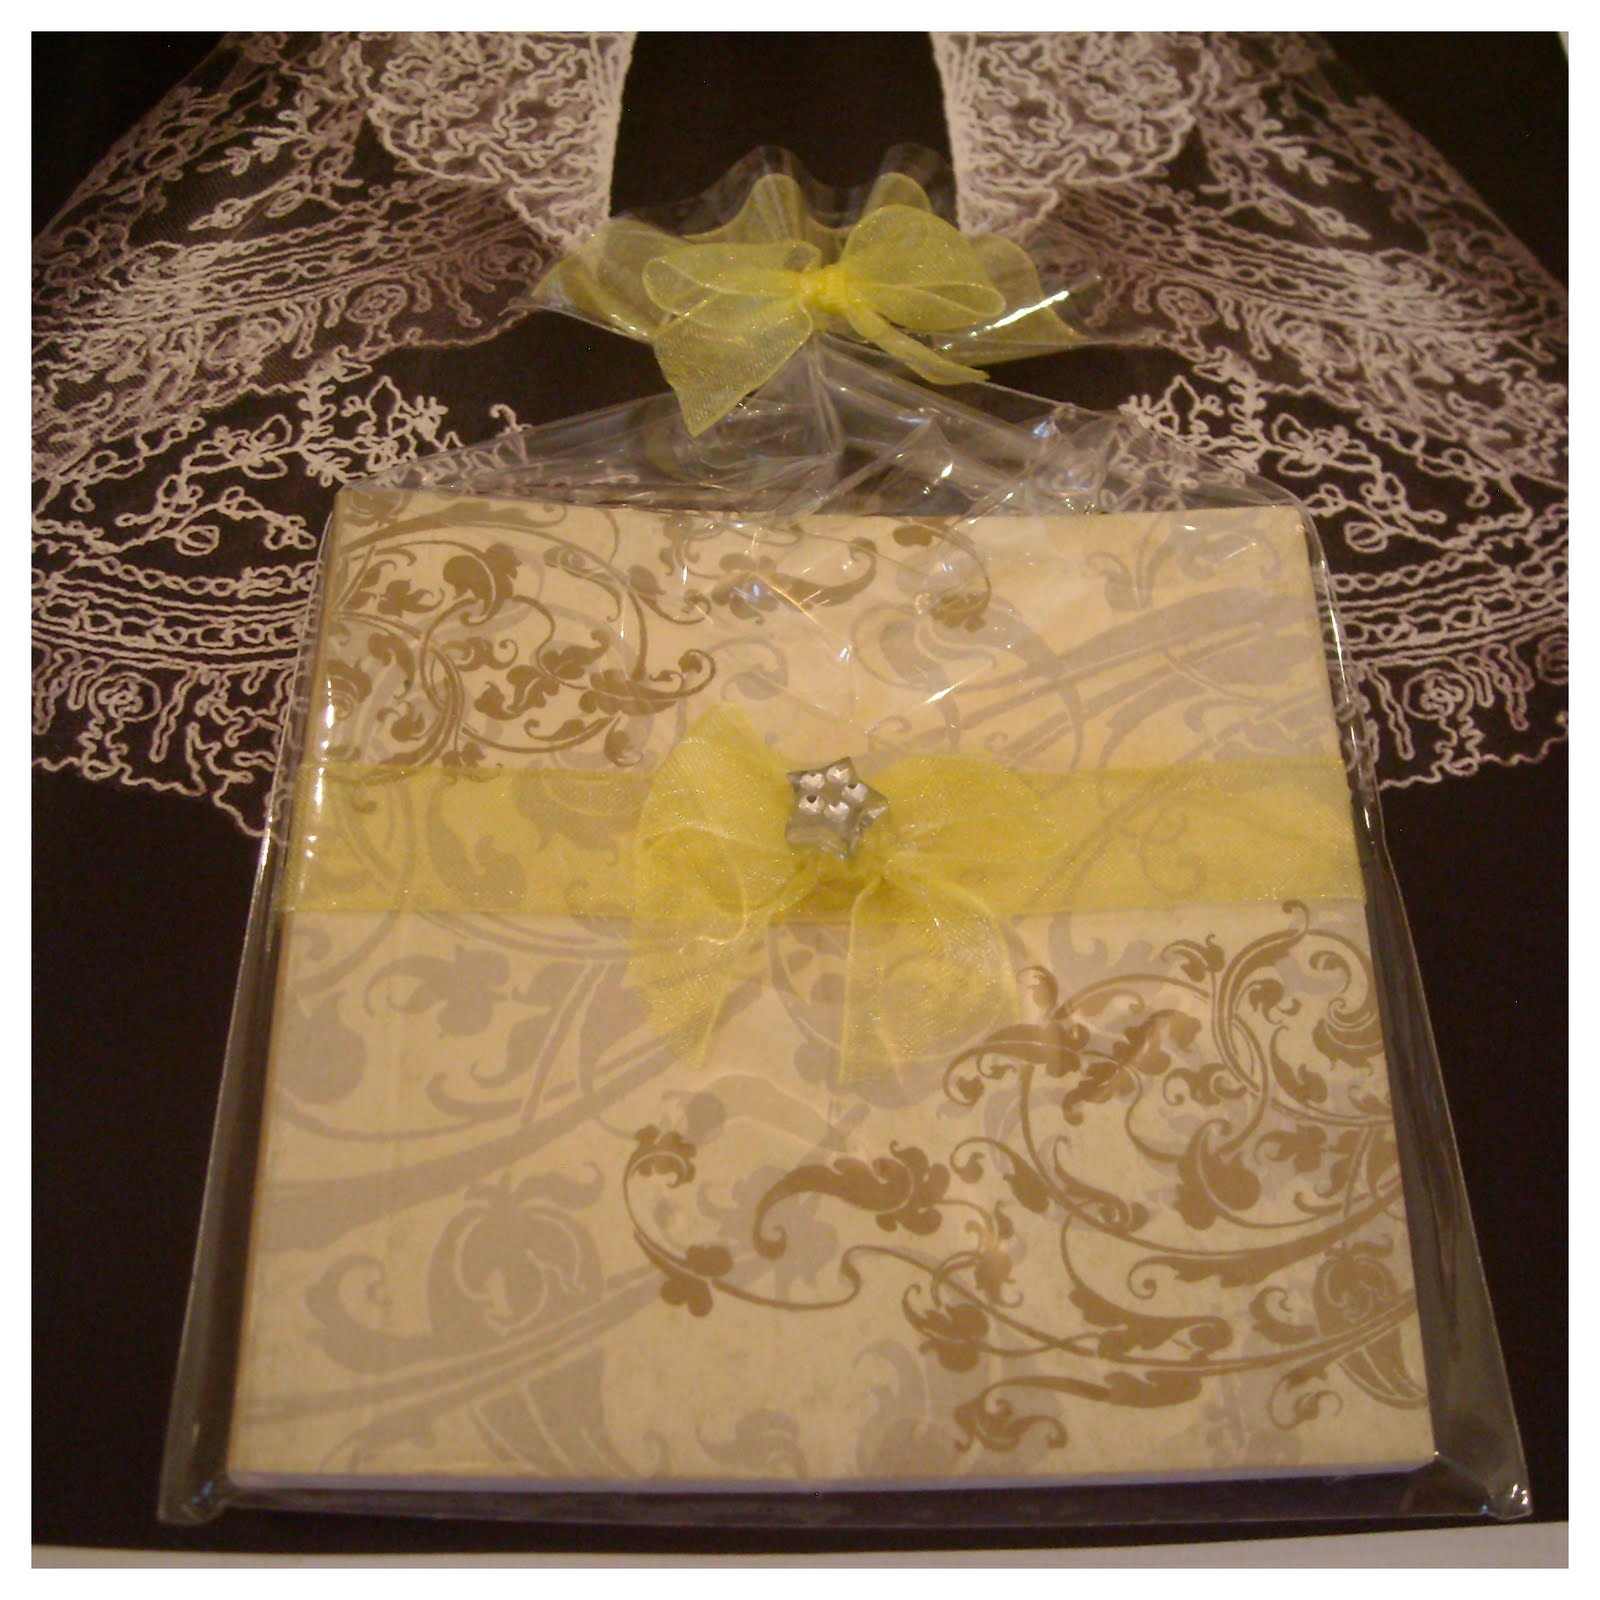 Favorart Wedding Favor And Gifts In Malaysia Wed1032 Seasonal Notepad